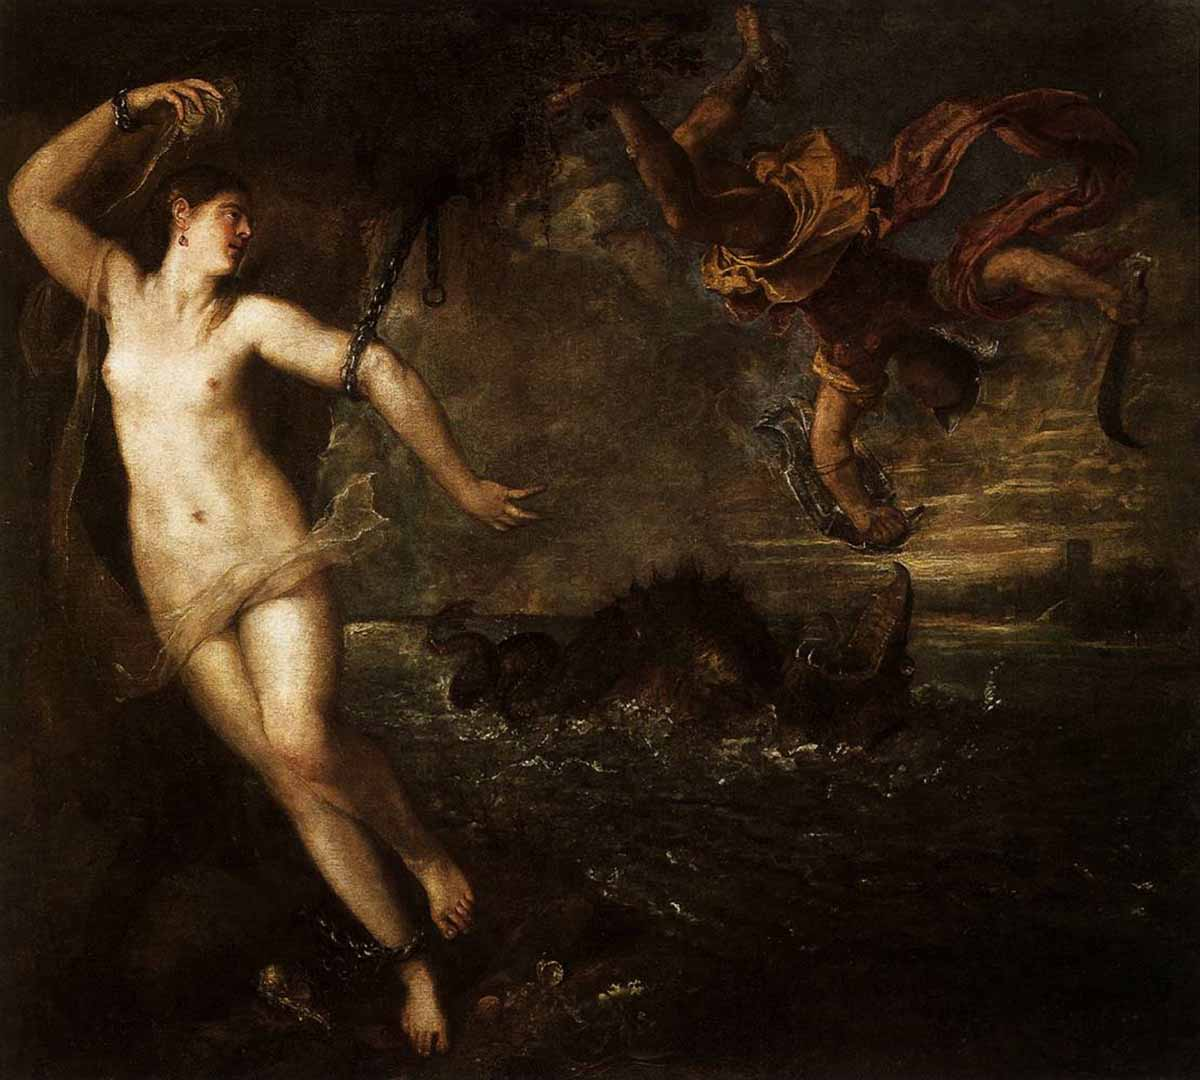 ovid metamorphoses titian perseus and andromeda The times - 05 aug 2016 perseus and andromeda by titian 1554-56, wallace collection, london w1 this painting was part of the guardian - 13 jan 2017 titian's great (though damaged) perseus and andromeda is just one painting in the wallace collection that takes its tale from the metamorphoses.